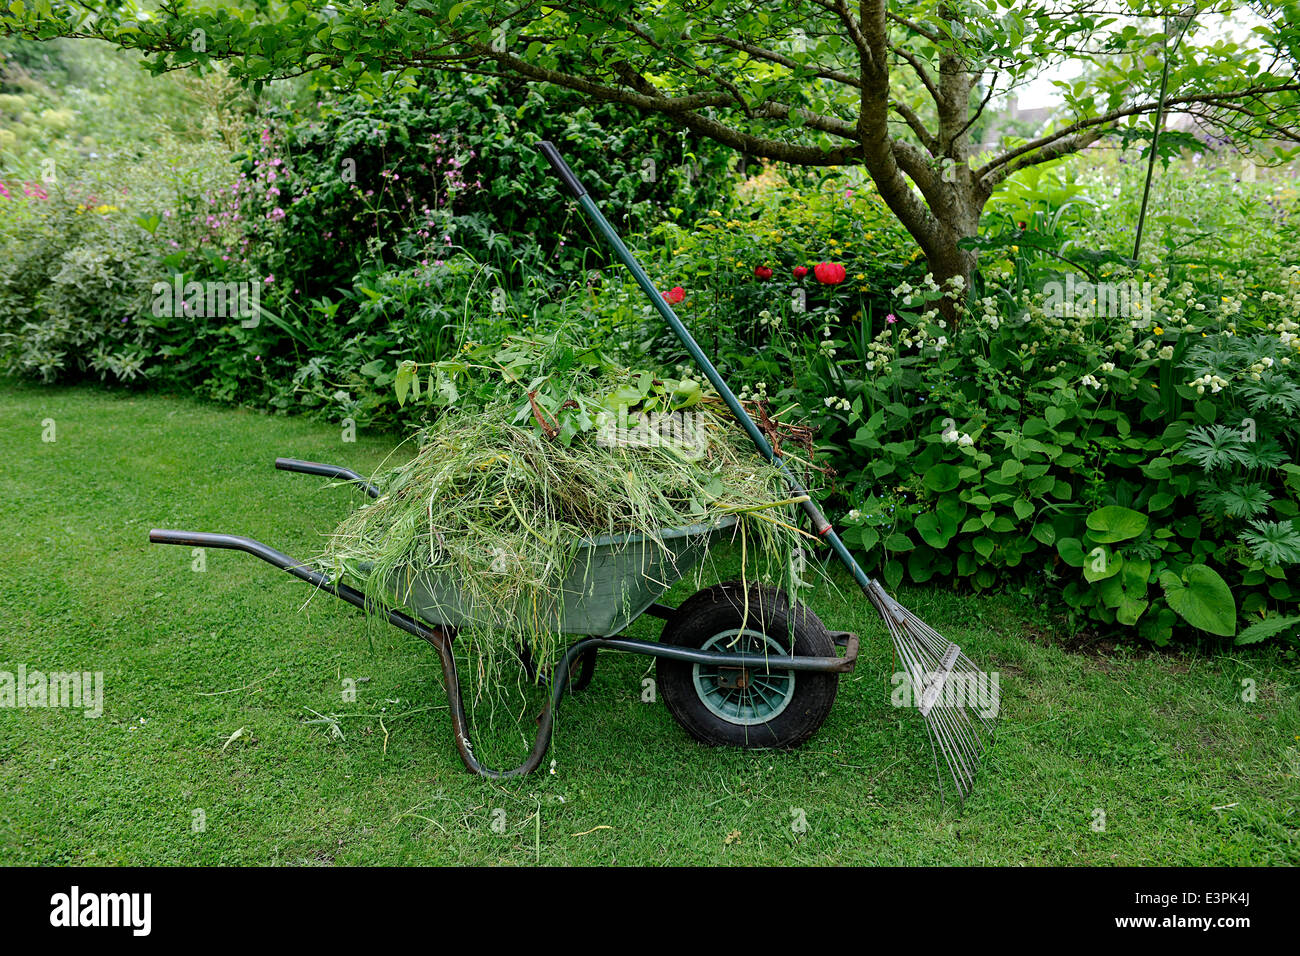 Wheelbarrow in English Garden at East Lambrook Manor Gardens, South Petherton, Somerset designed by Margery Fish - Stock Image